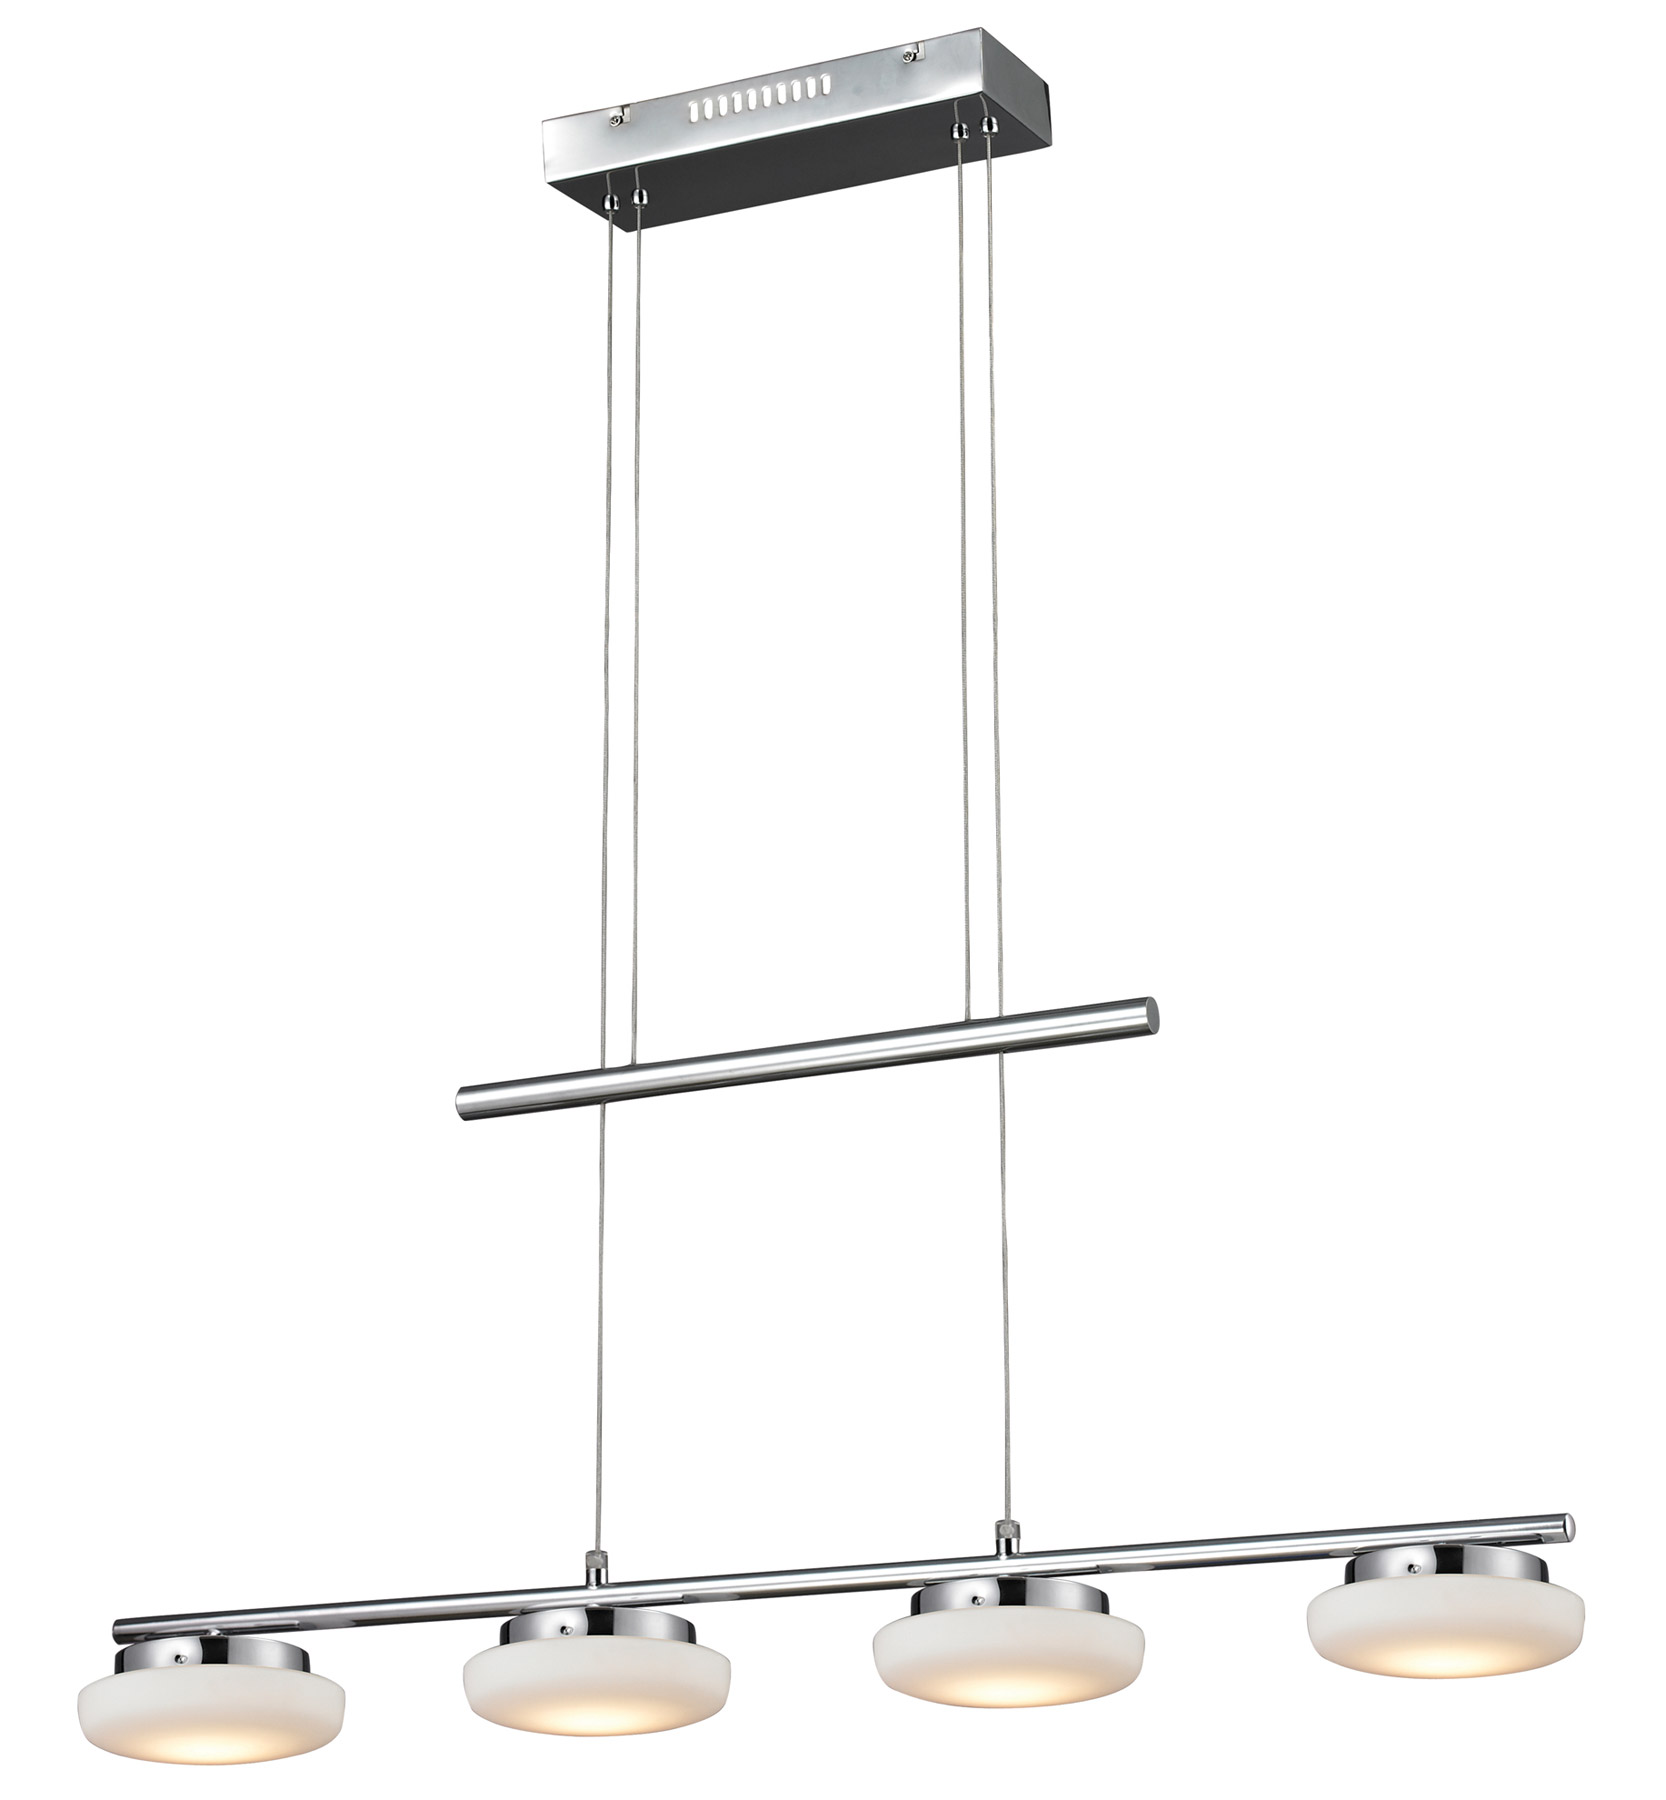 Pull Down Ceiling Lights As One Of The